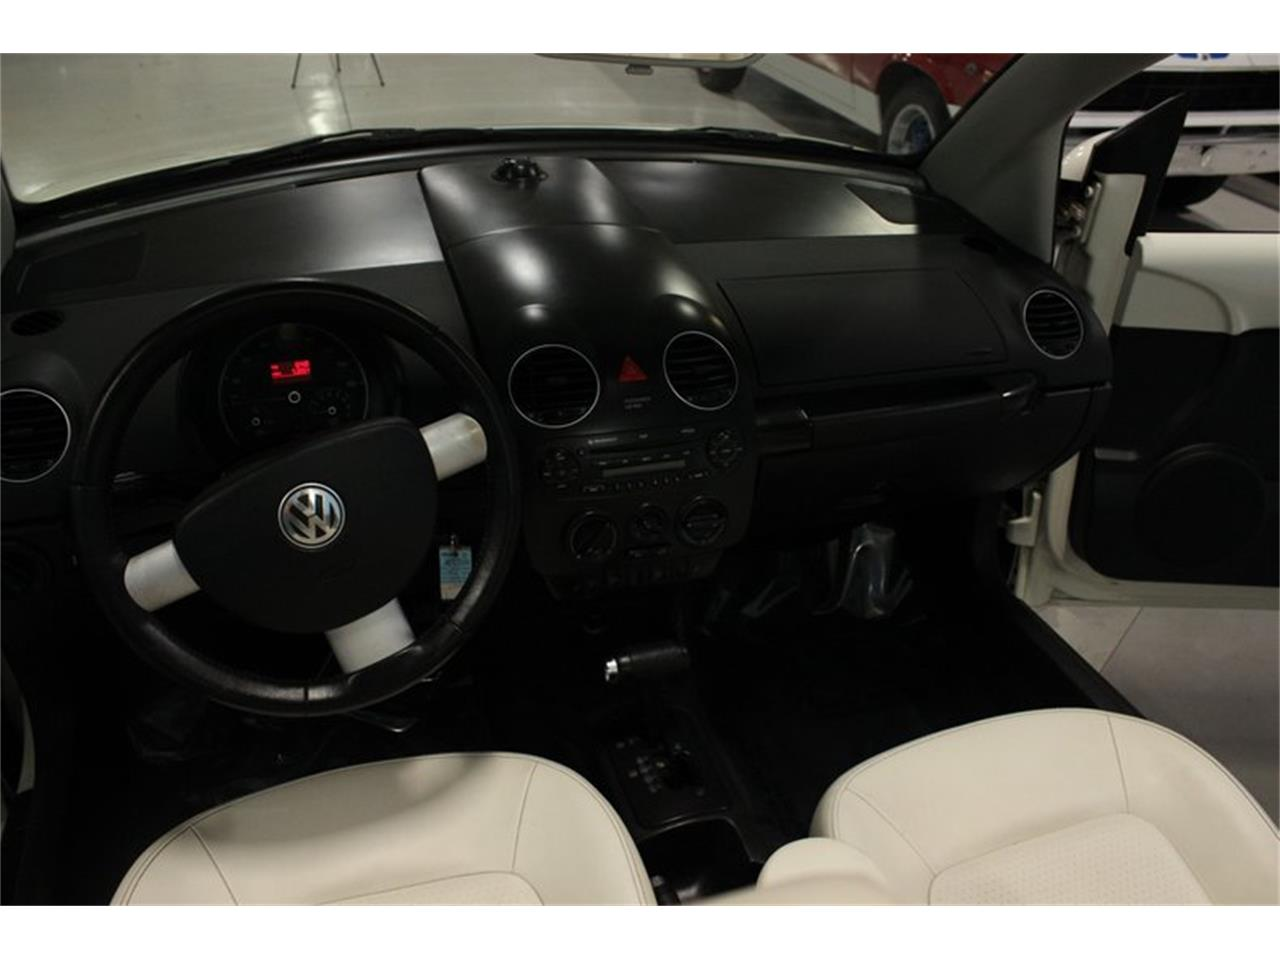 Large Picture of '07 Volkswagen Beetle - $7,997.00 - QYHO